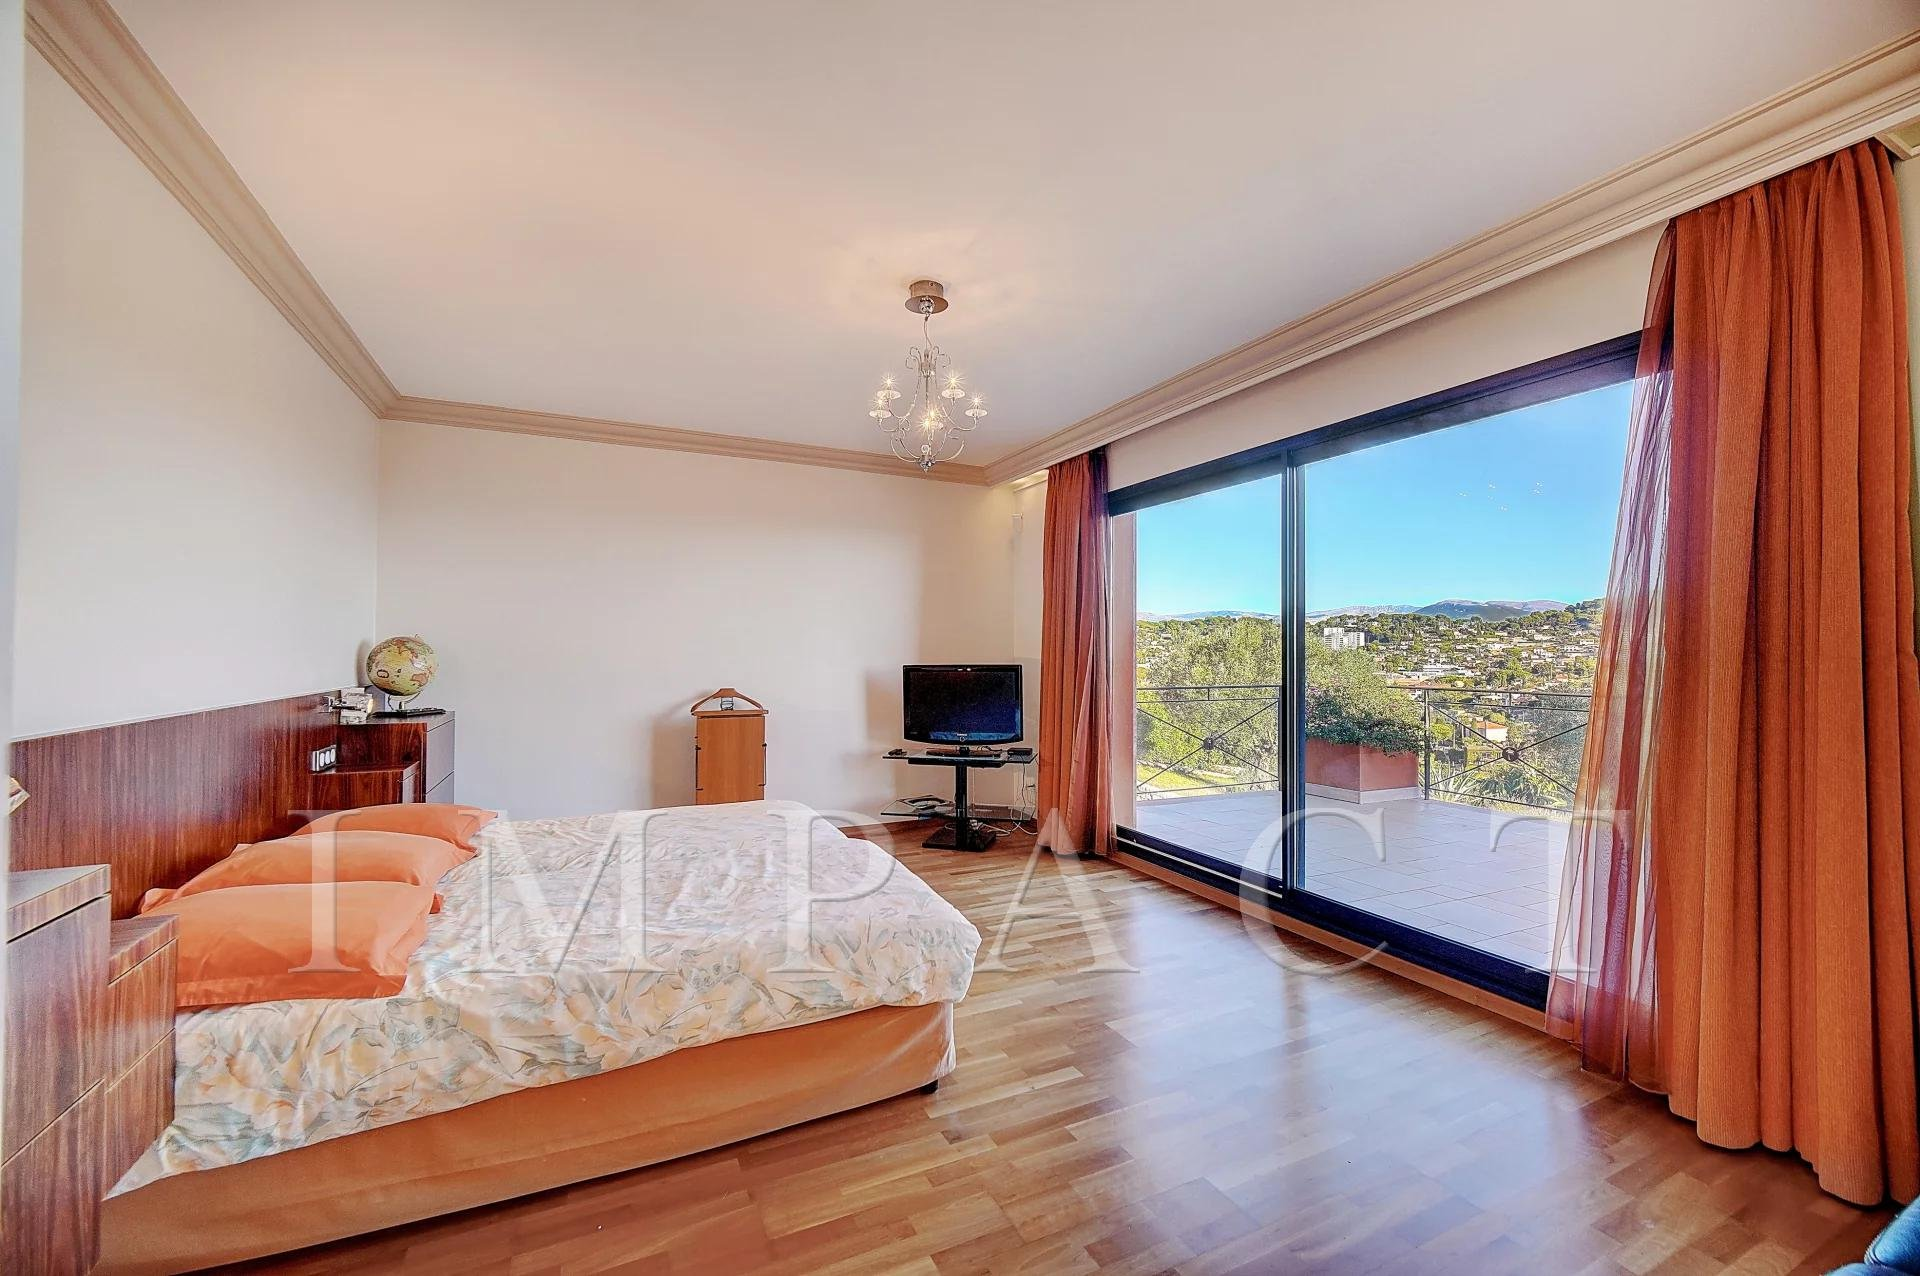 TOP OF THE HILLS - PANORAMIC SEA VIEW